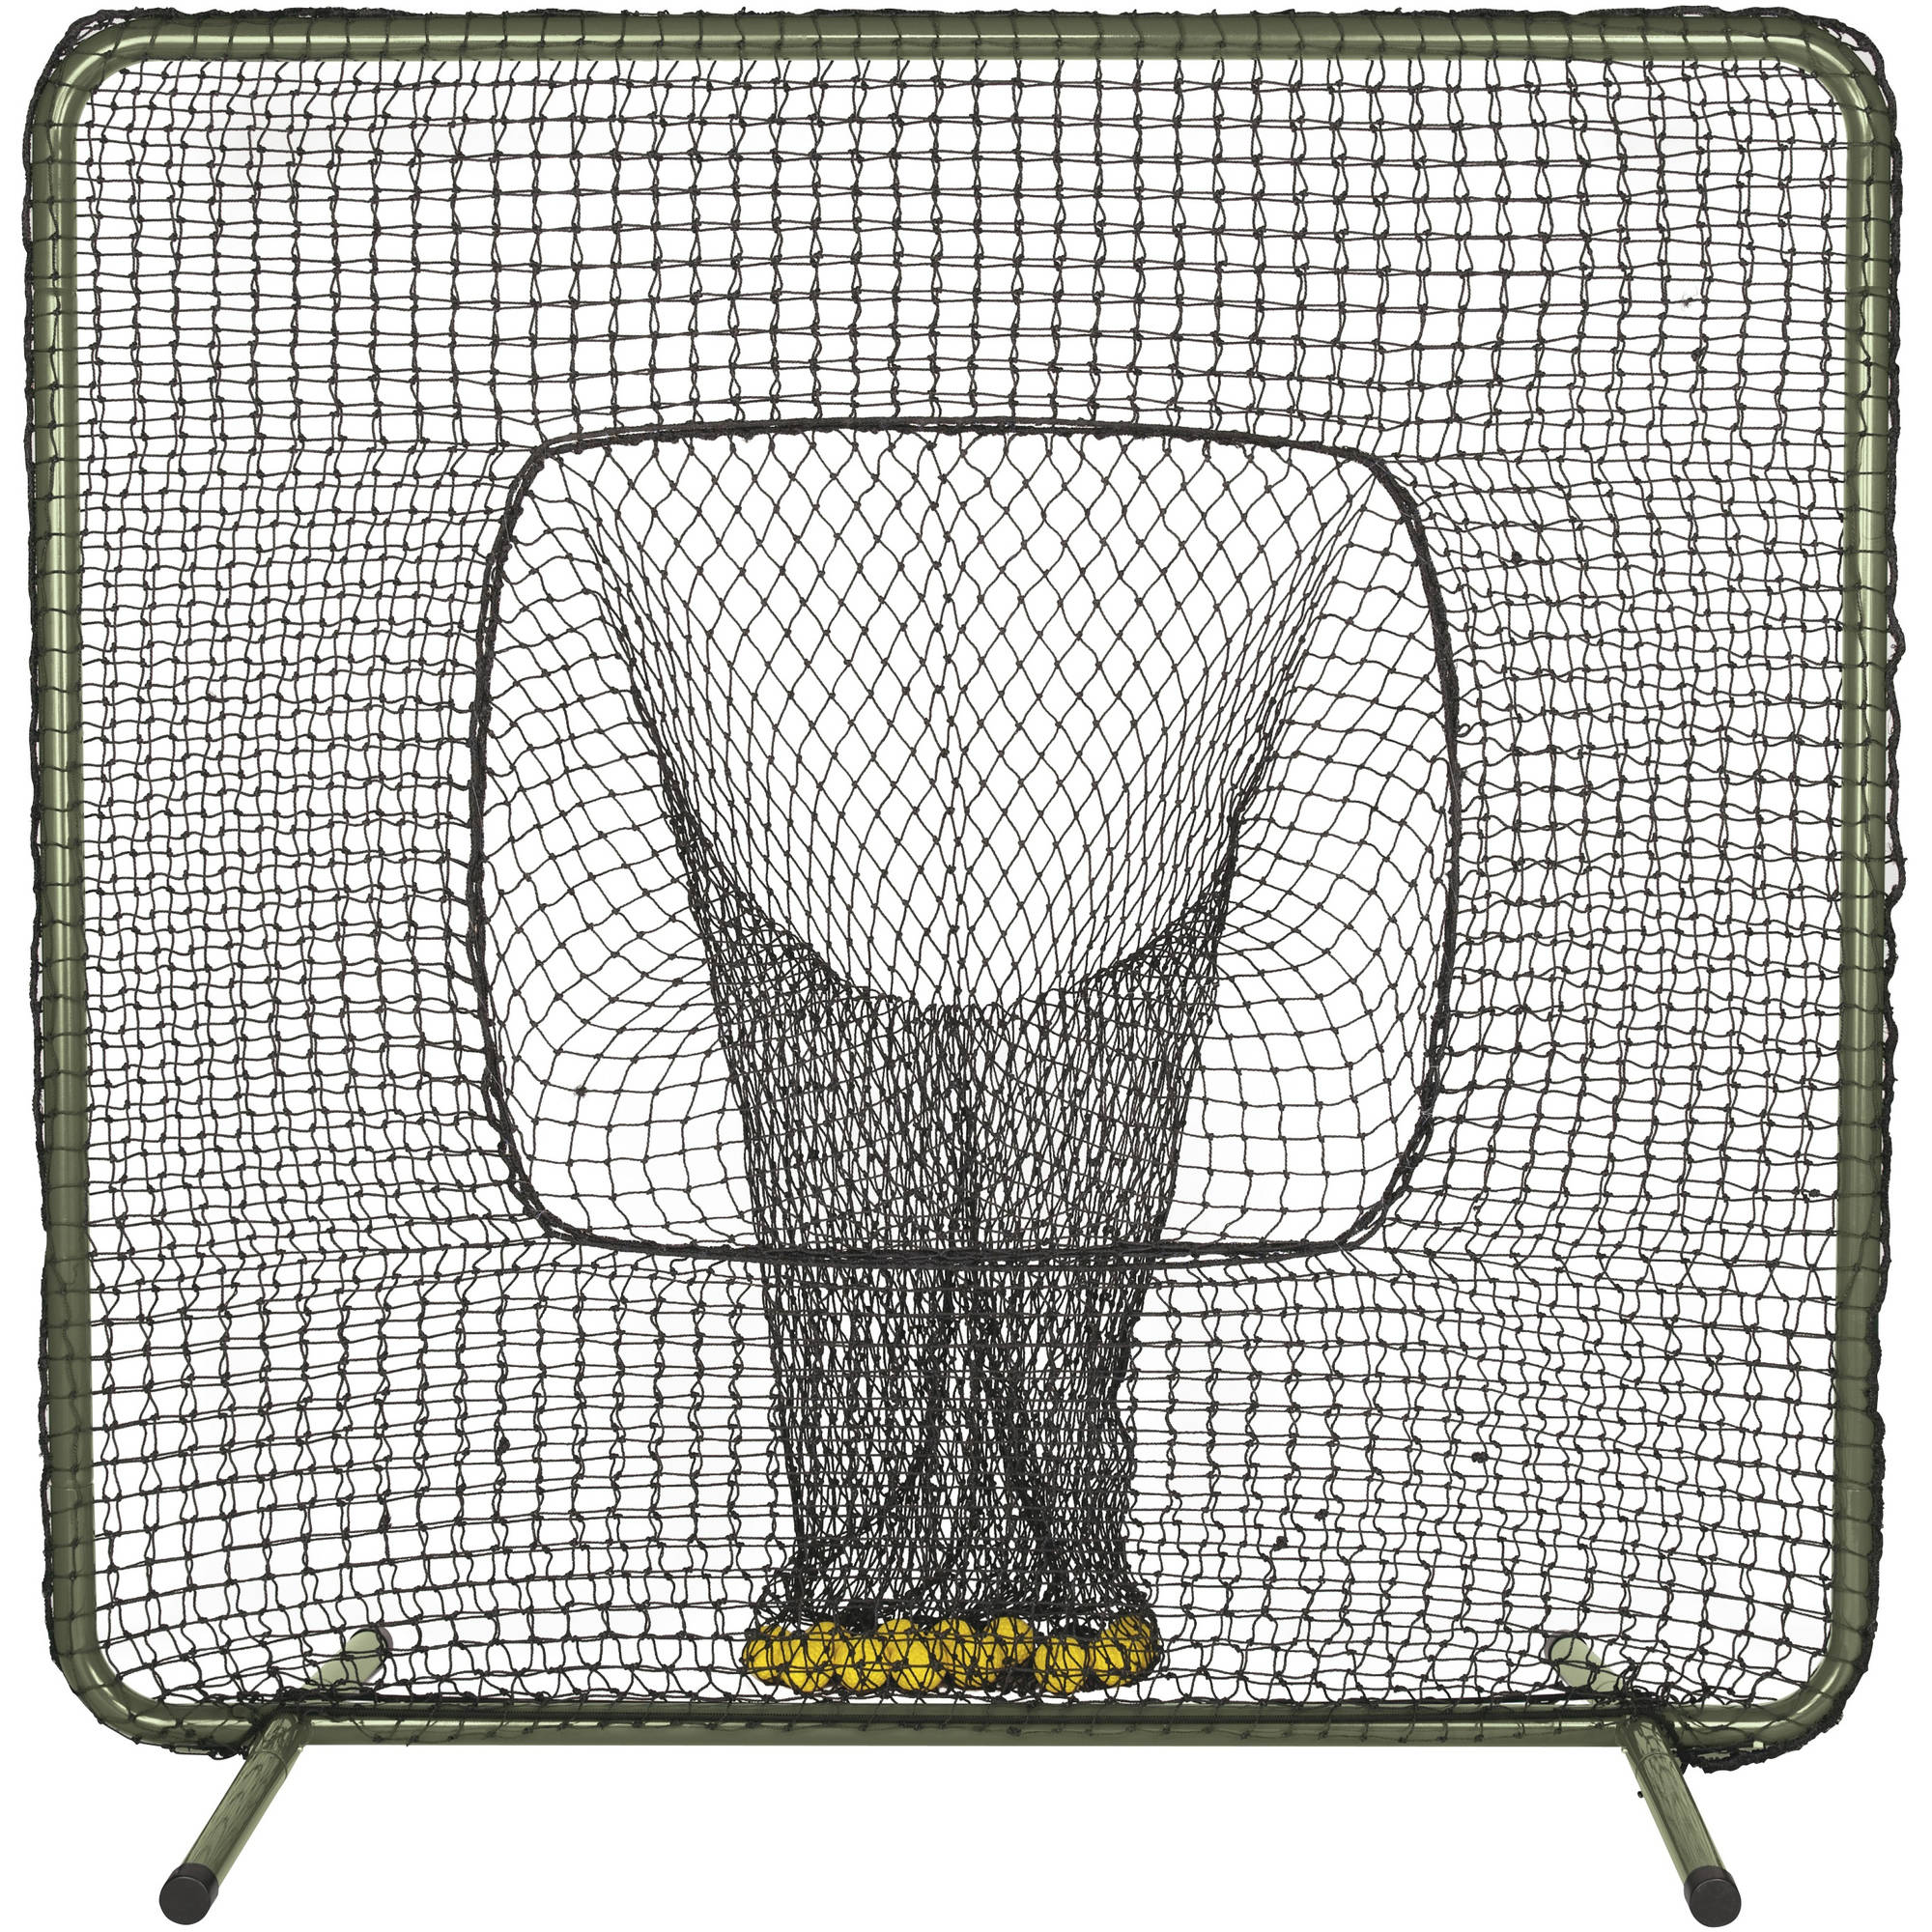 ATEC Protective Batting Practice Screen with Ball Sock by Wilson